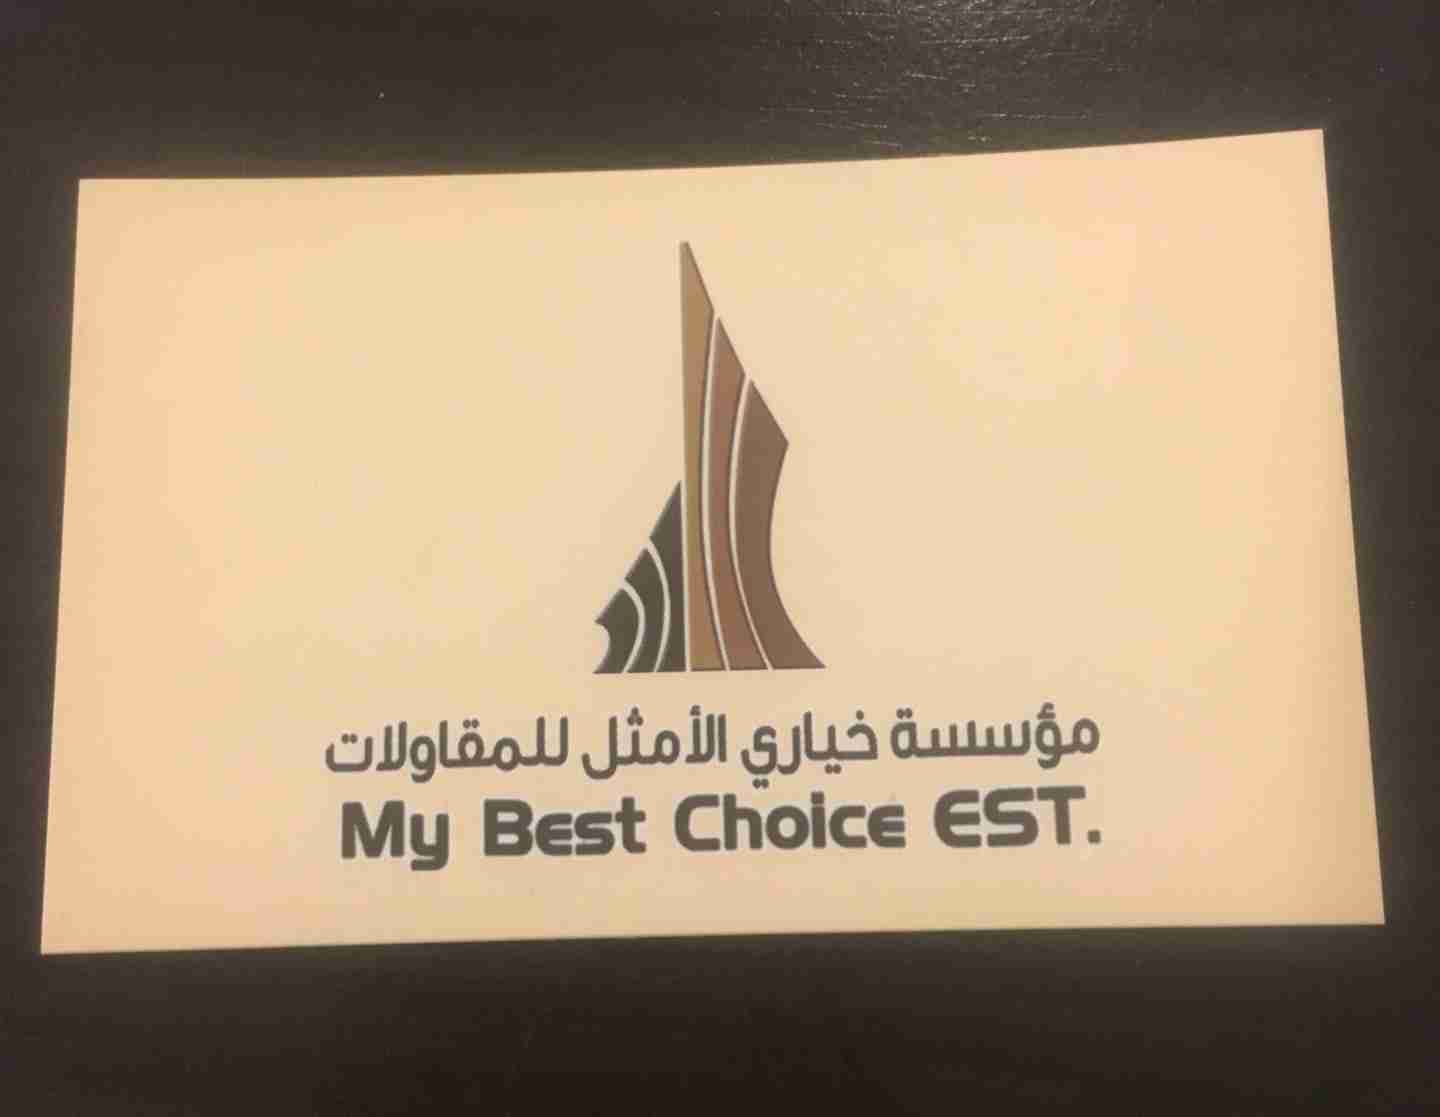 We are investment & finance firm specializing in bridge loans, real estate loans, business and personal loans, partnership, joint venture, infrastructural d-  مطلوب فني تكيف وفني...